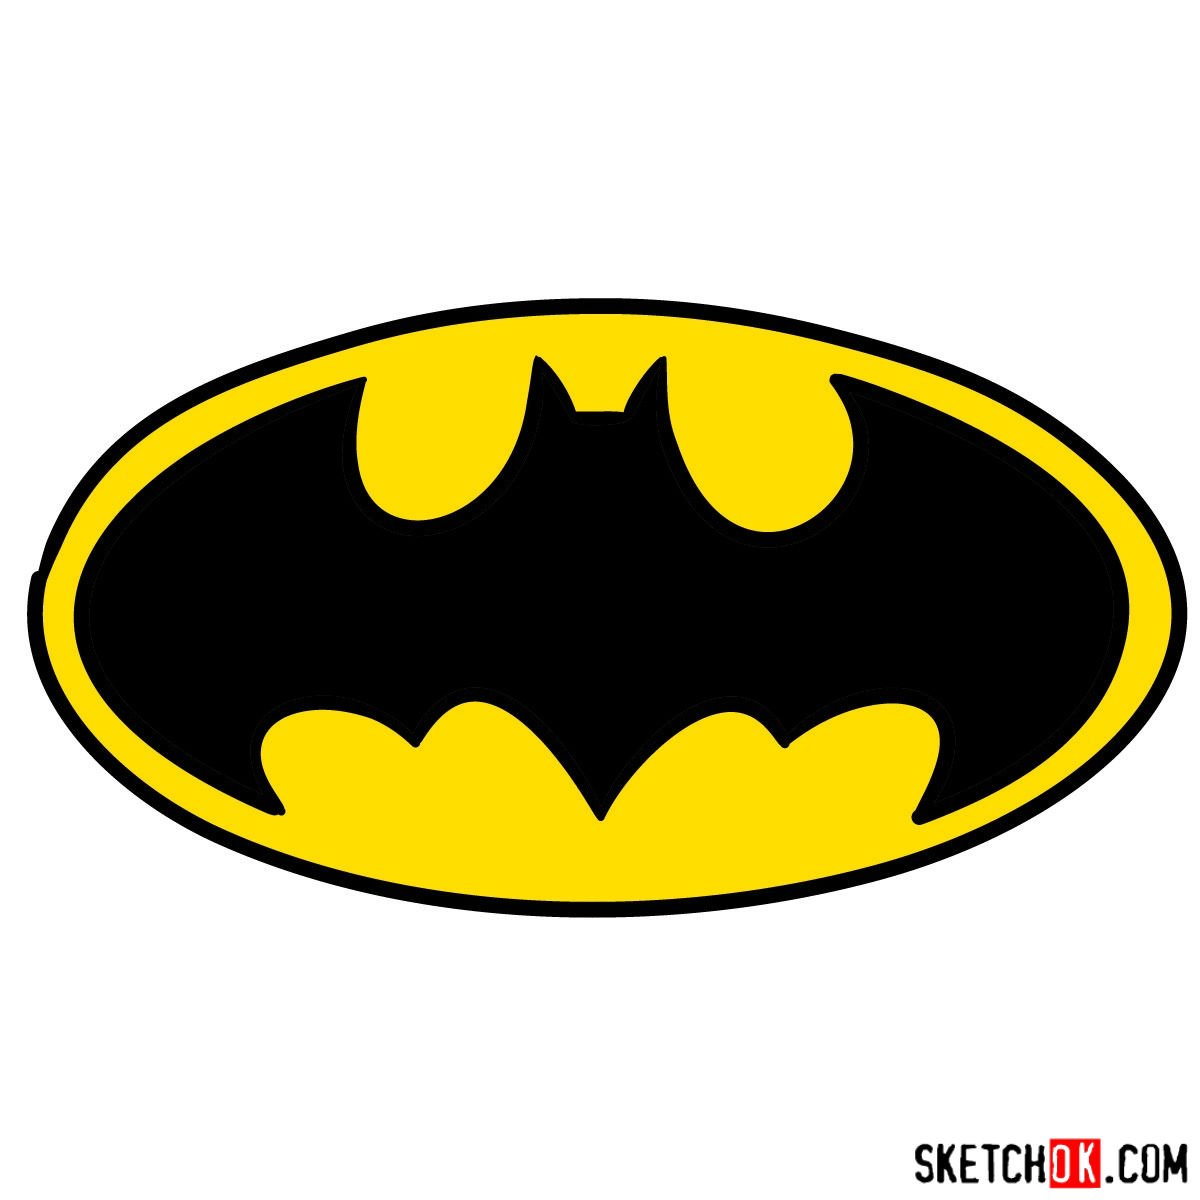 How to draw Batman Sign